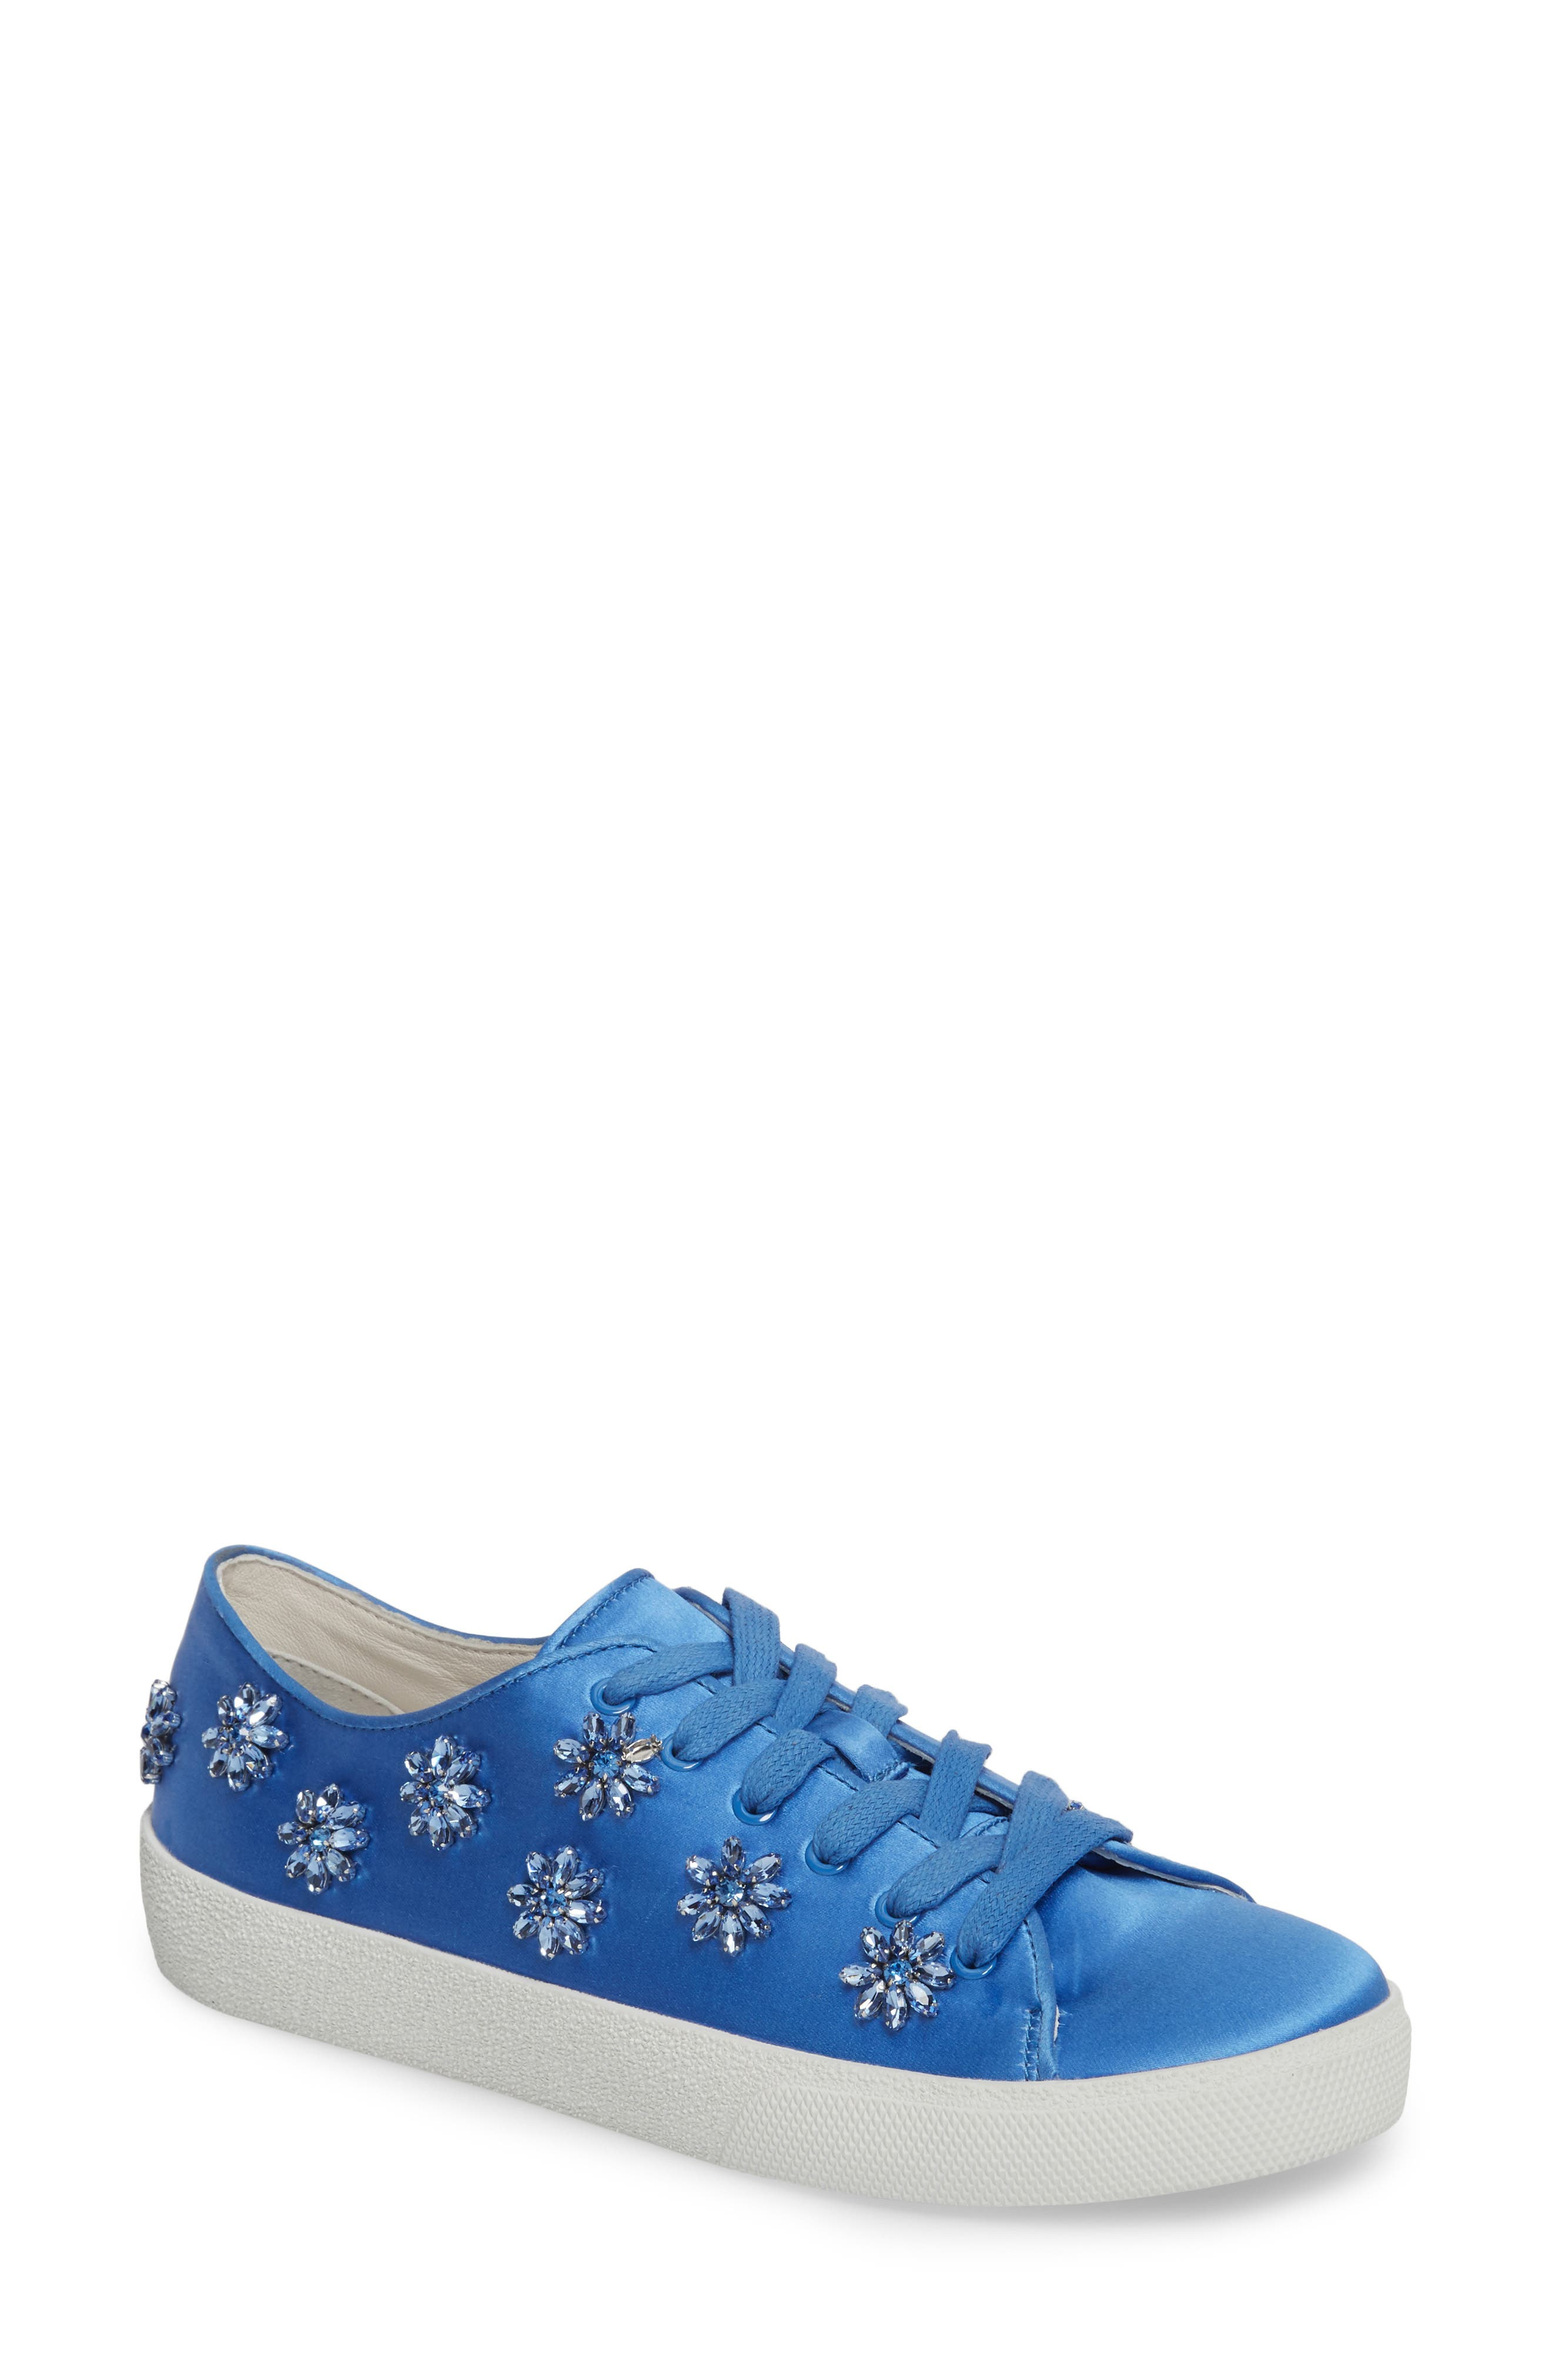 Cleo Crystal Embellished Sneaker,                         Main,                         color, 430